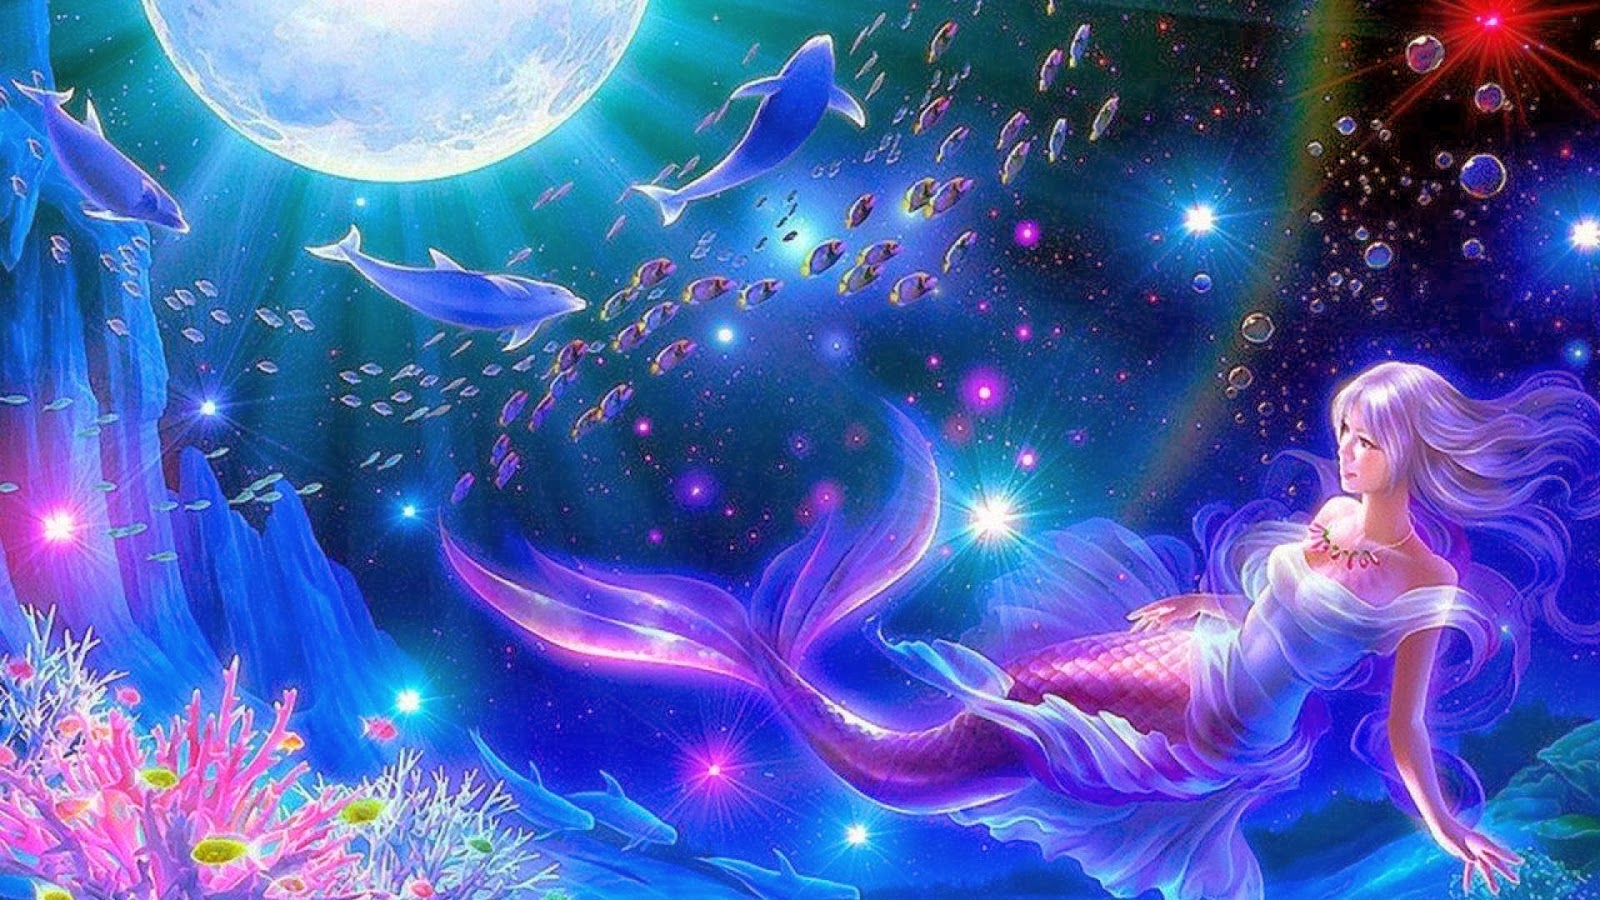 all new wallpaper mermaid moon fantasy widescreen hd